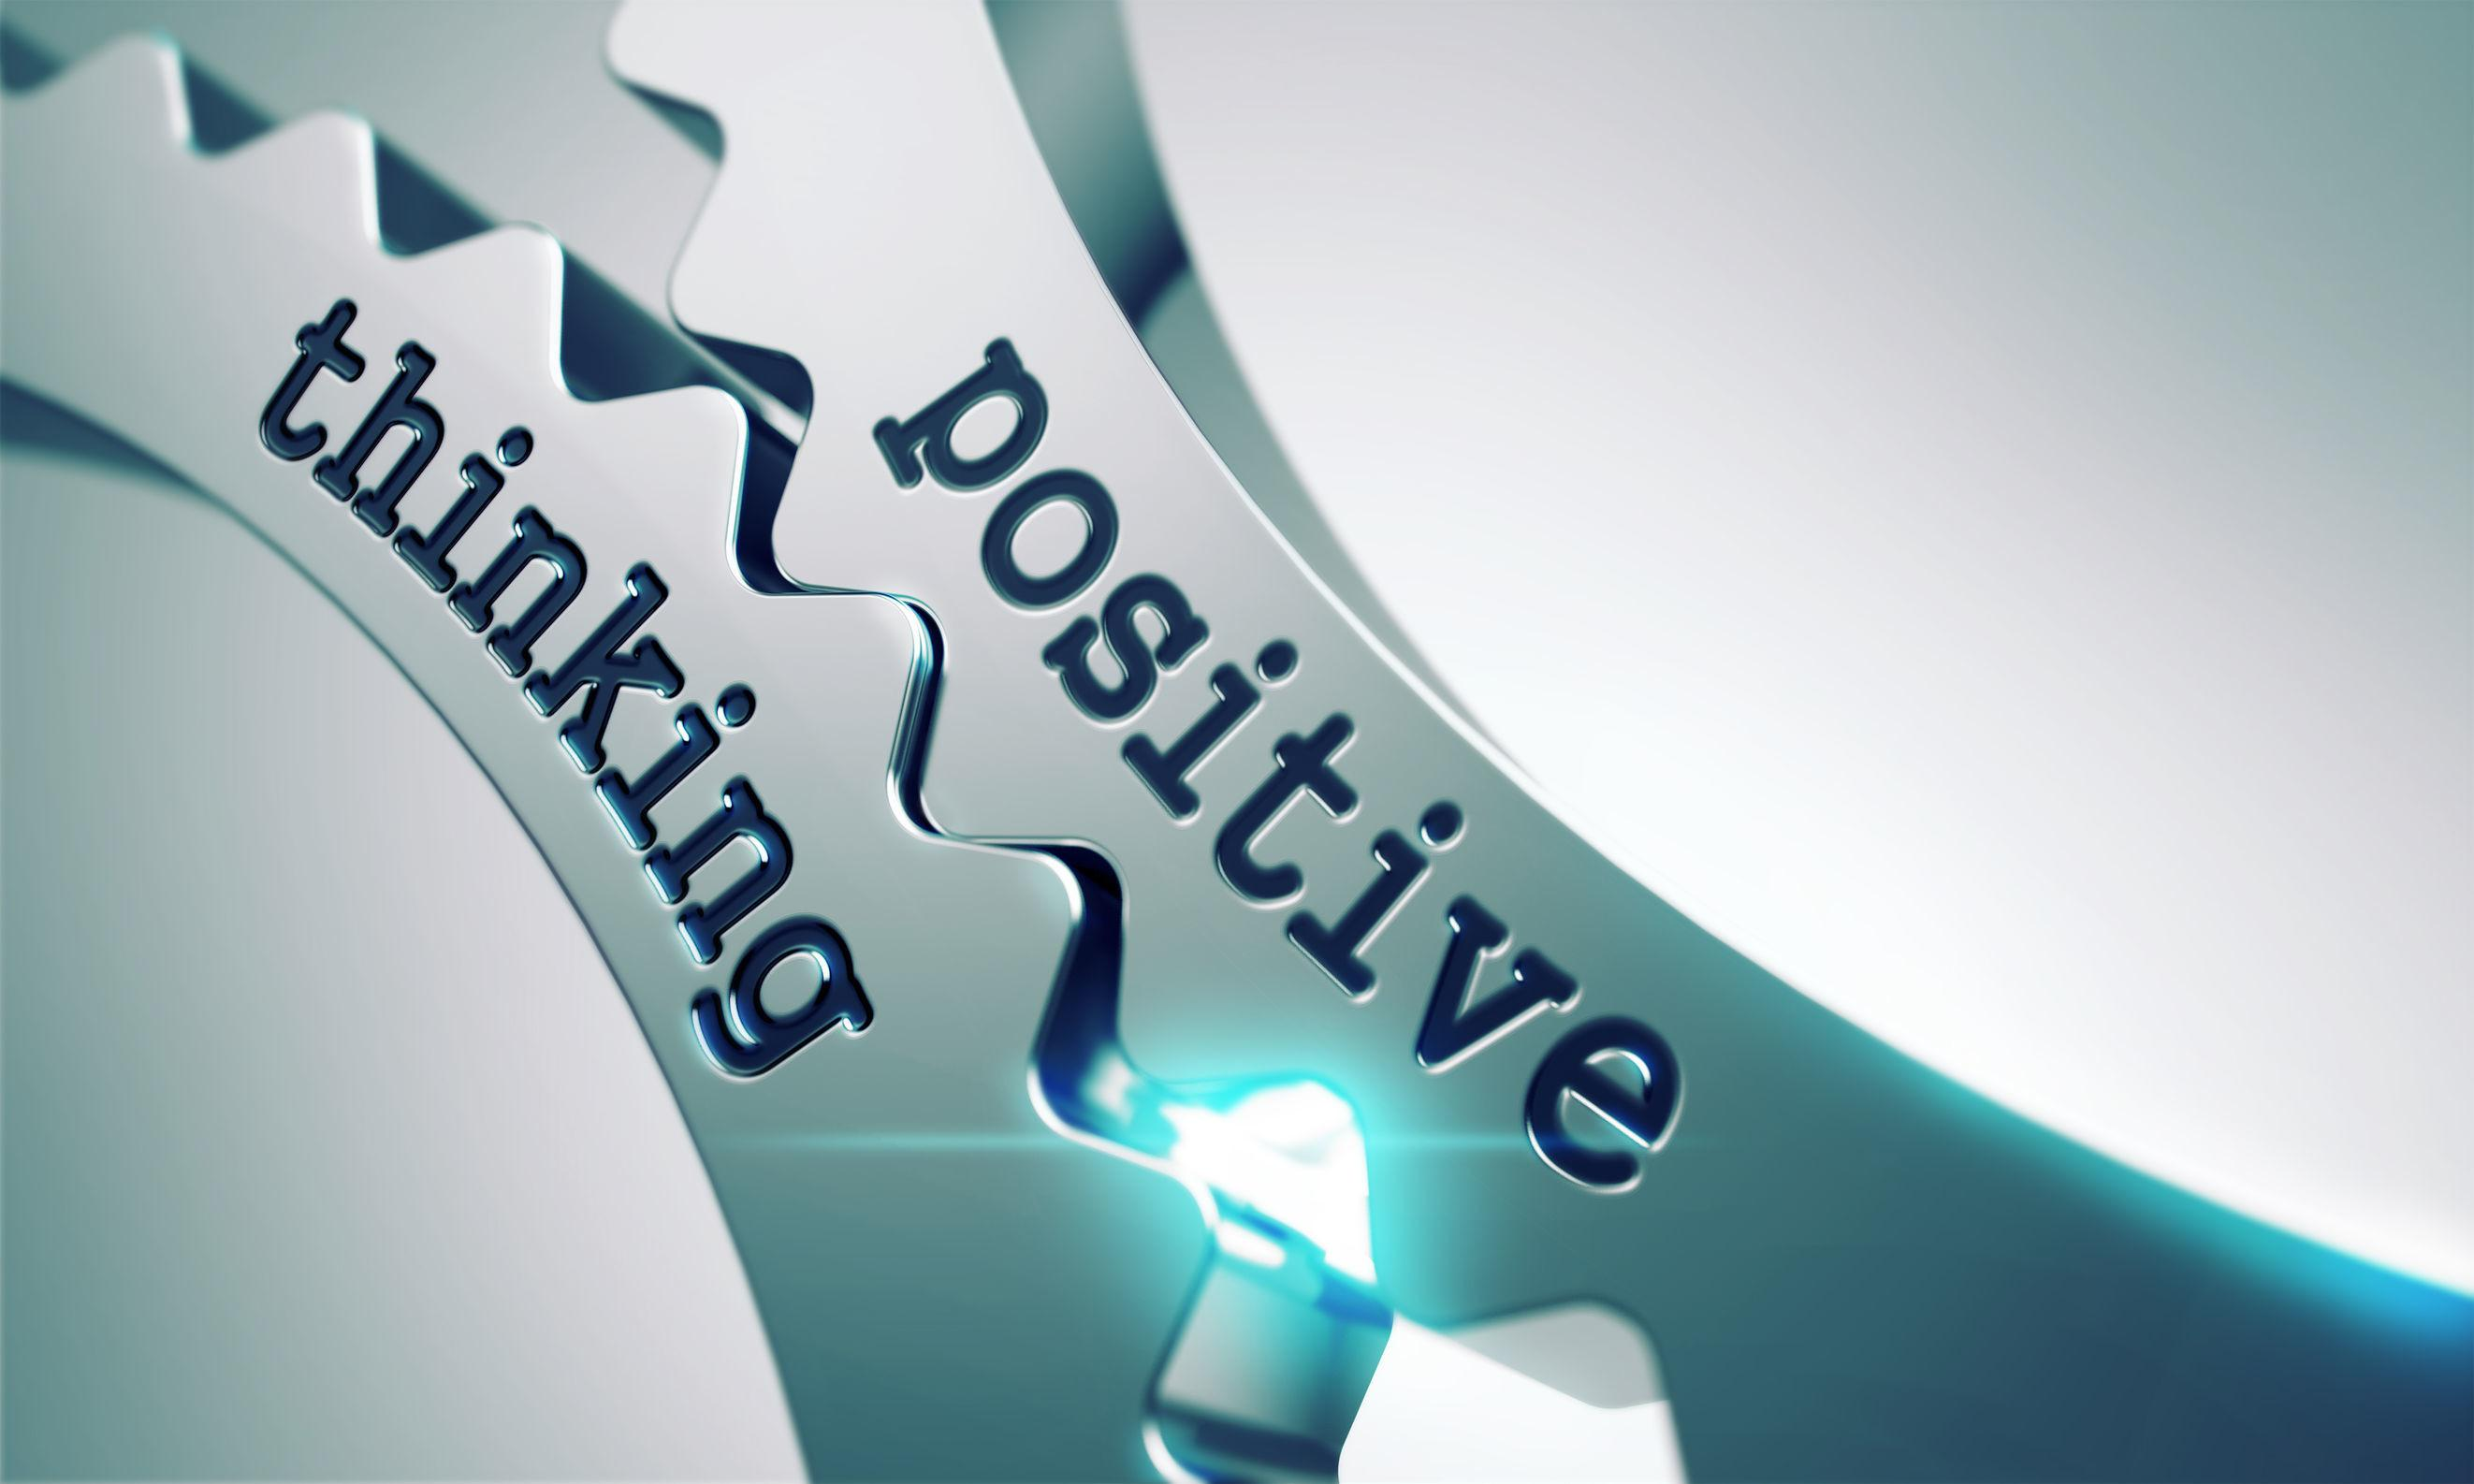 Positive Thinking Wallpapers - Wallpaper Cave